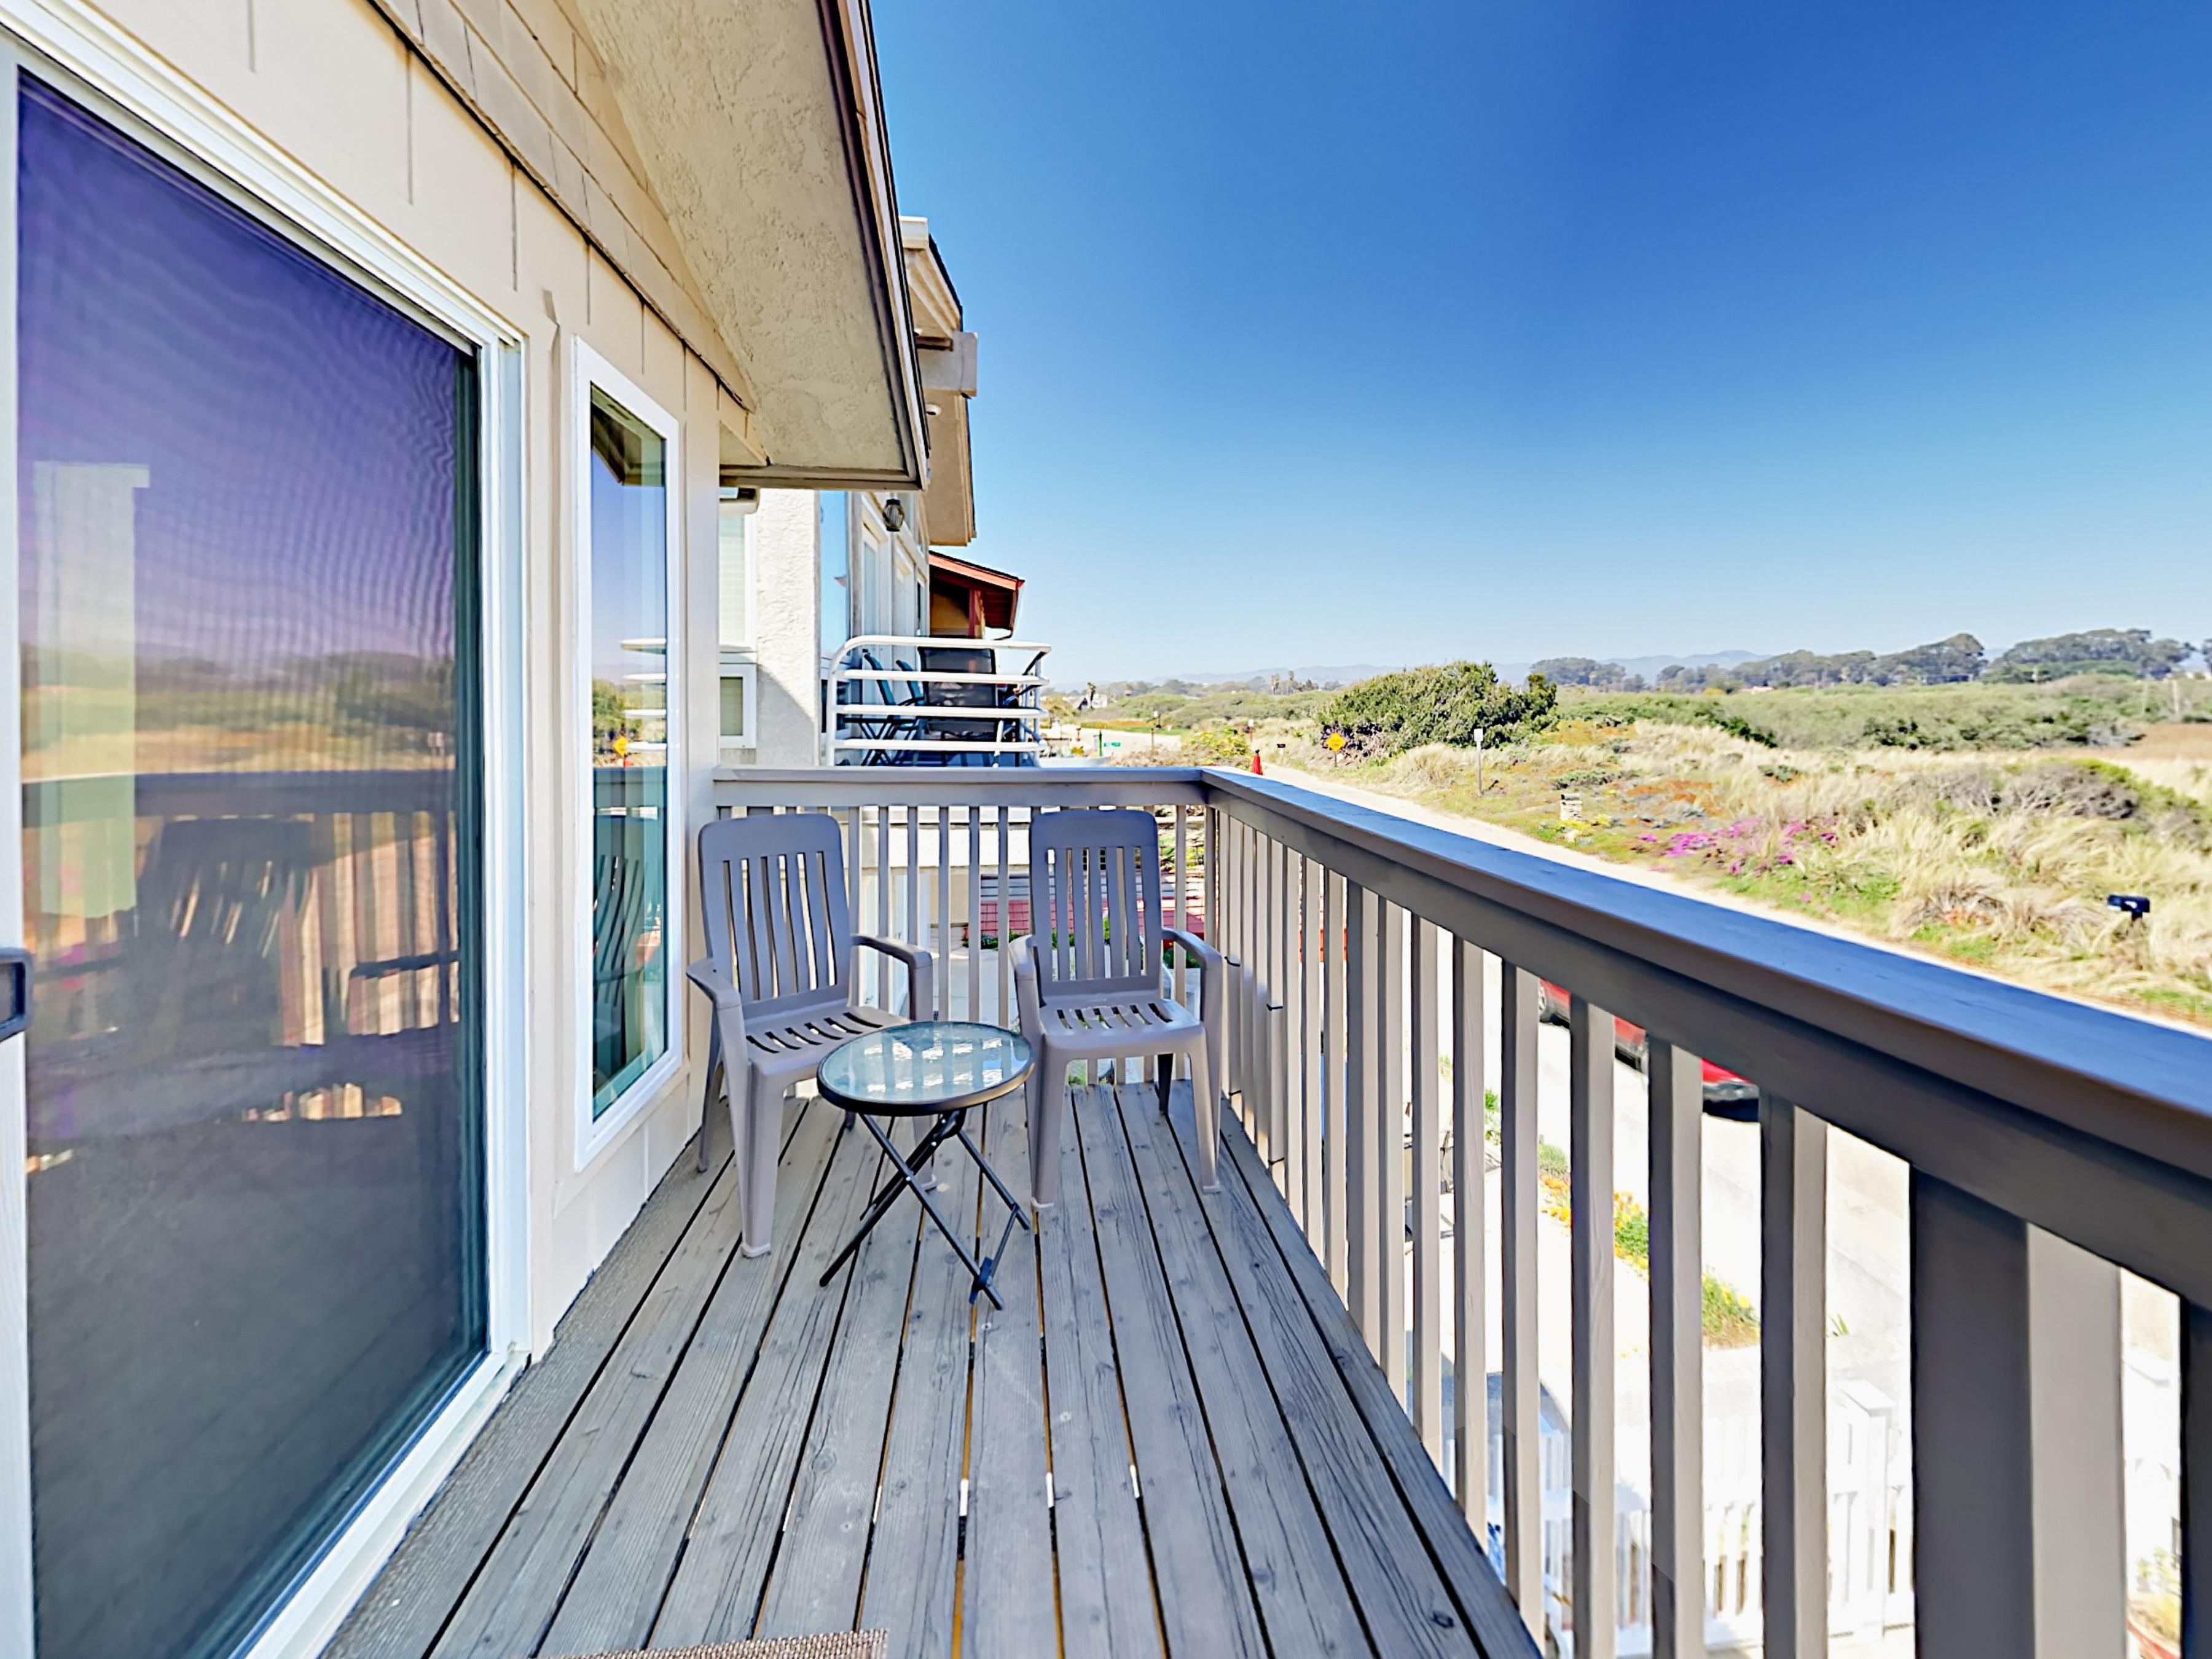 A private balcony offers a nice spot to take in the lush views of the lagoon and dunes.